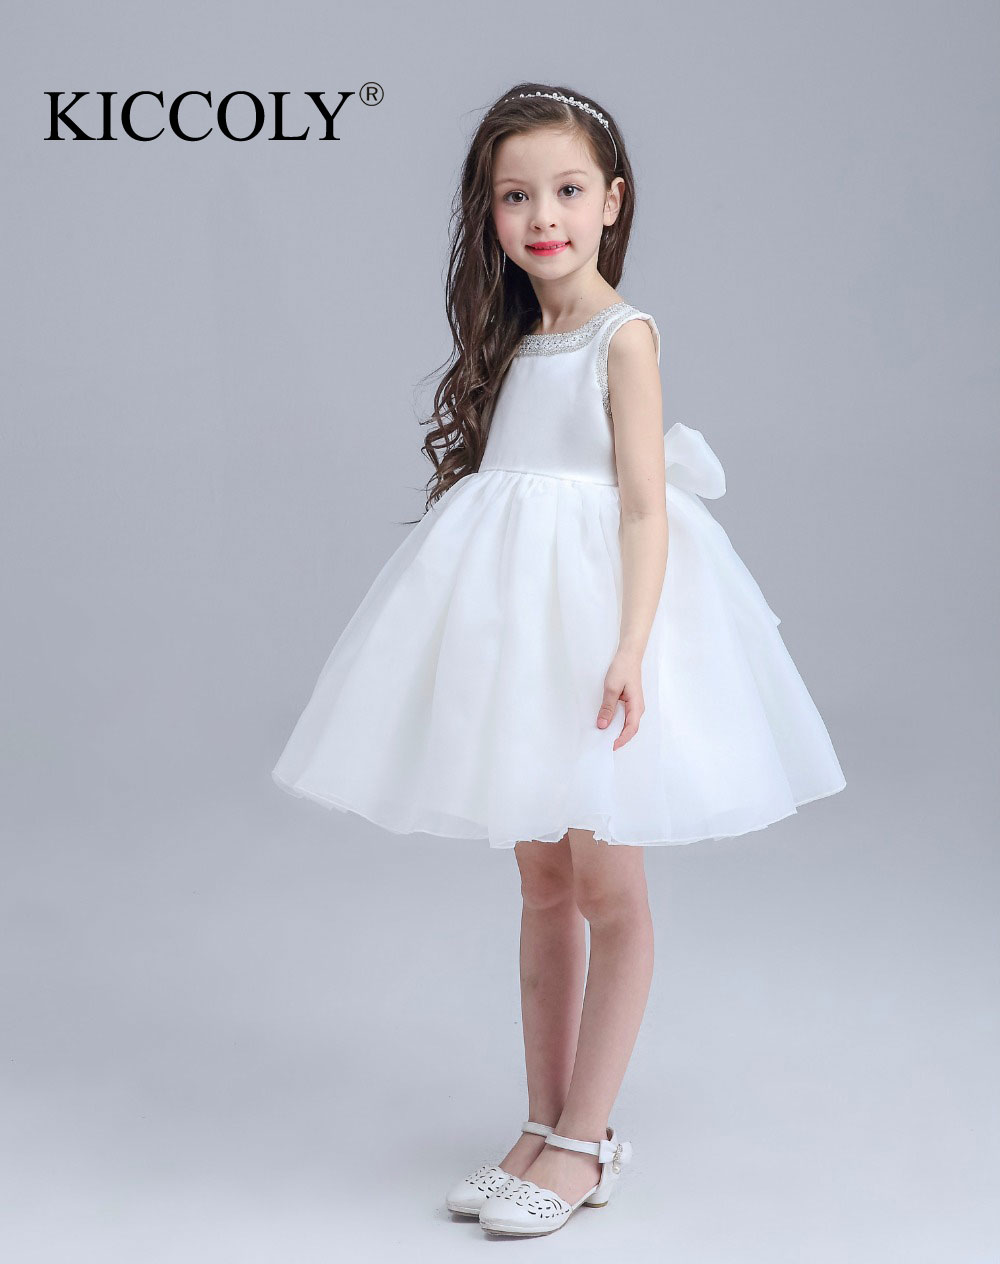 Toddler Glitz Pageant Dresses For Wedding 2016 First Communion Dresses Pageant Ball Gowns for Flower Girls vestidos de comunion new white and blue lace flower girl dresses birthday party pageant prom glitz frocks first communion ball gowns for juniors